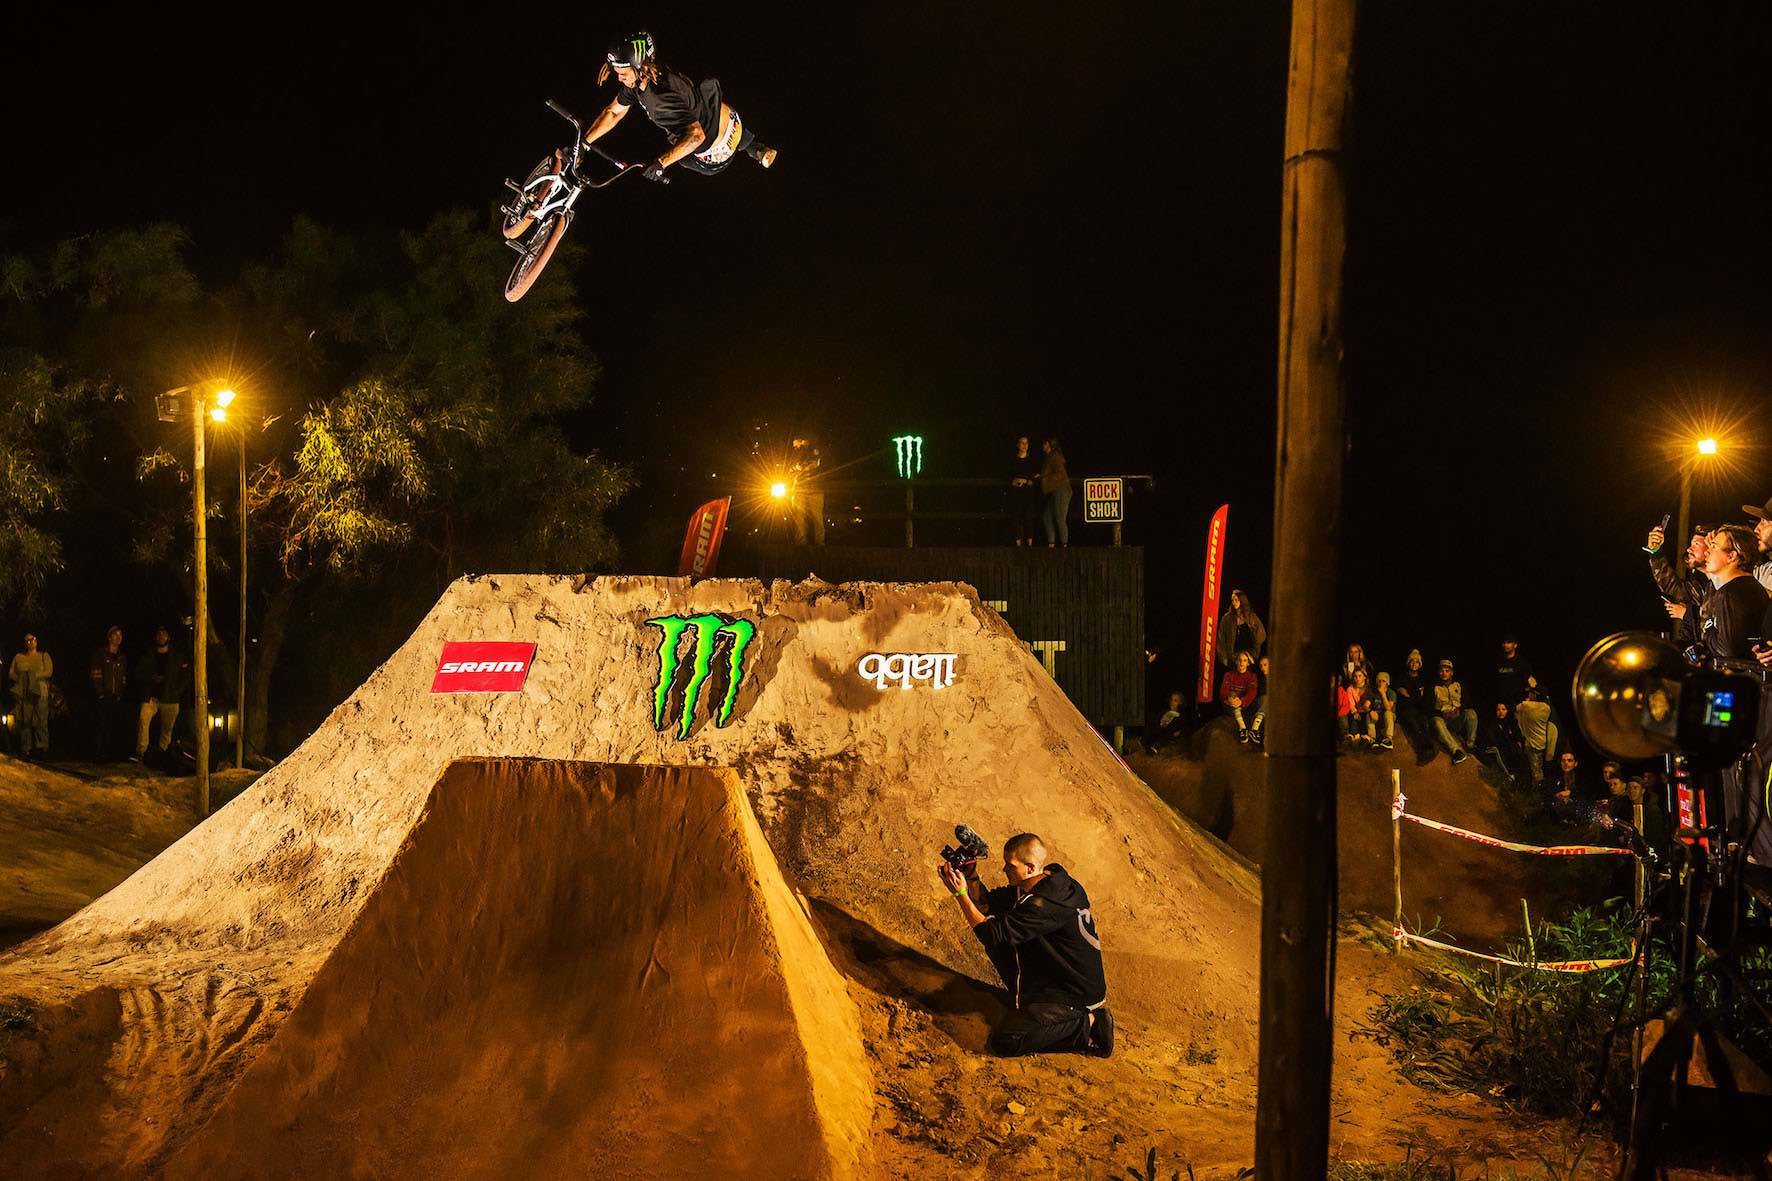 Pat Casey showing his BMX Skills during the Night Harvest